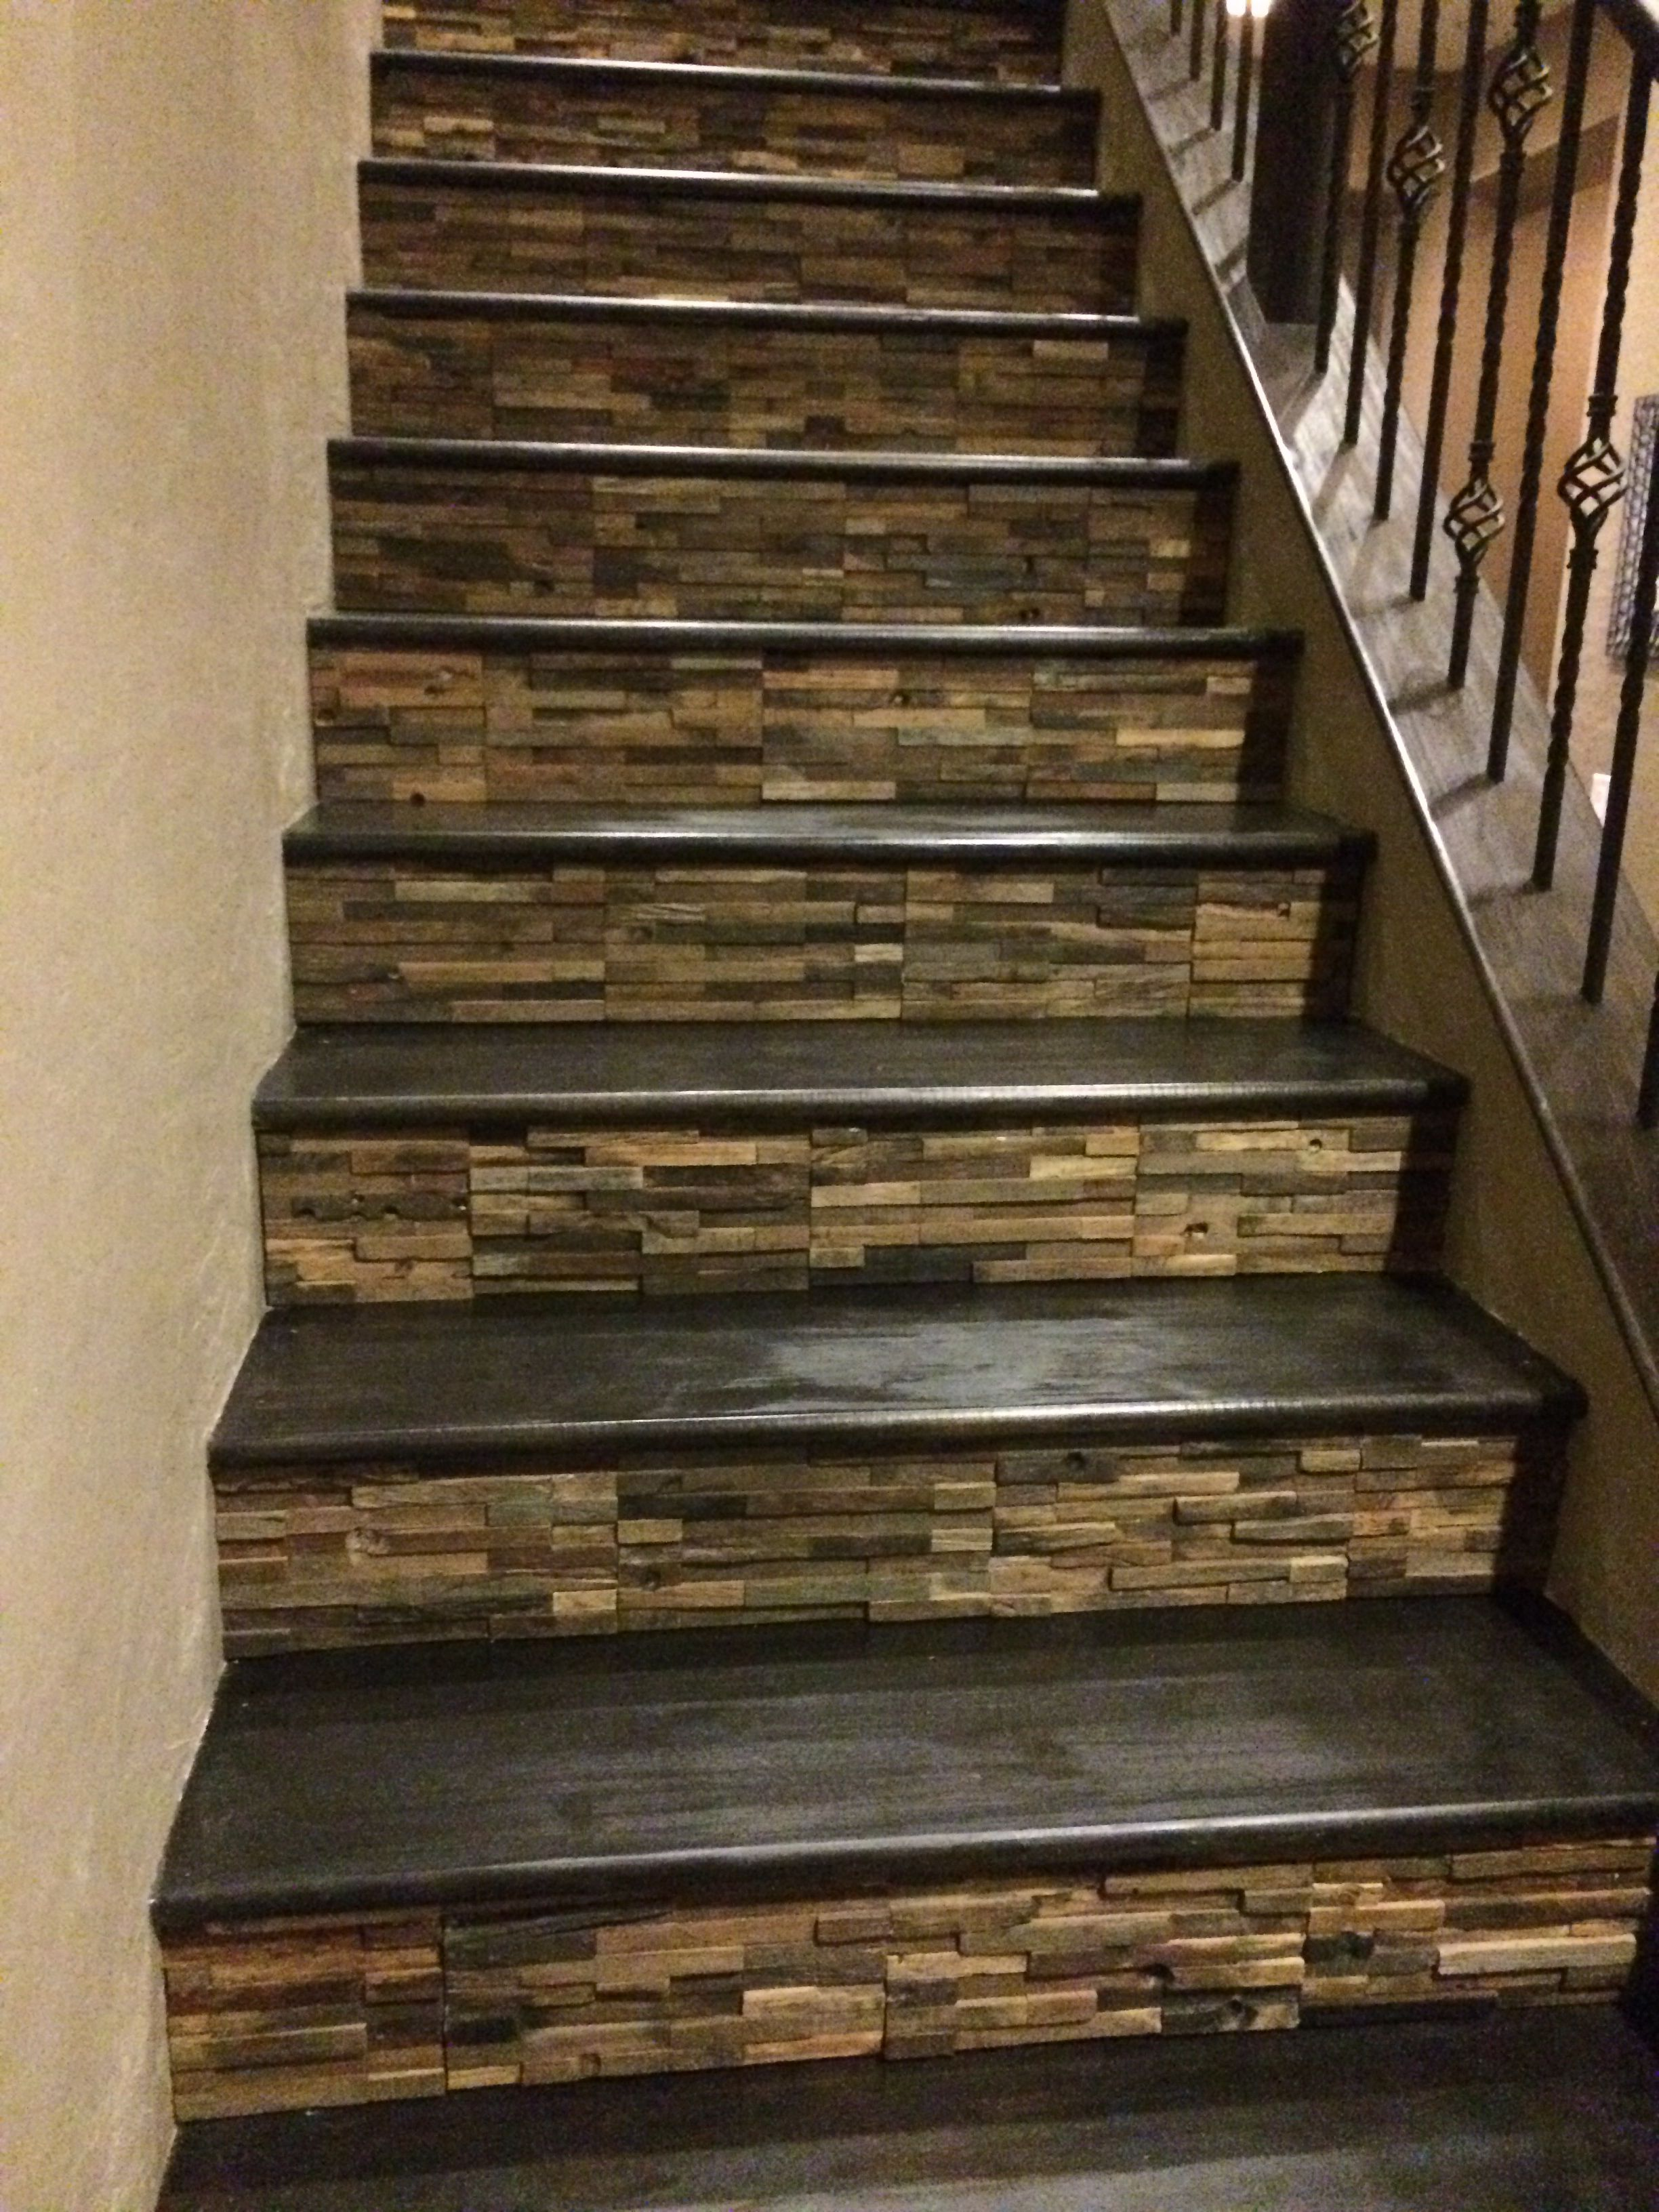 From Carpeting To Stained Wood With Custom Risers Tiled   Stair Riser Tiles Designs